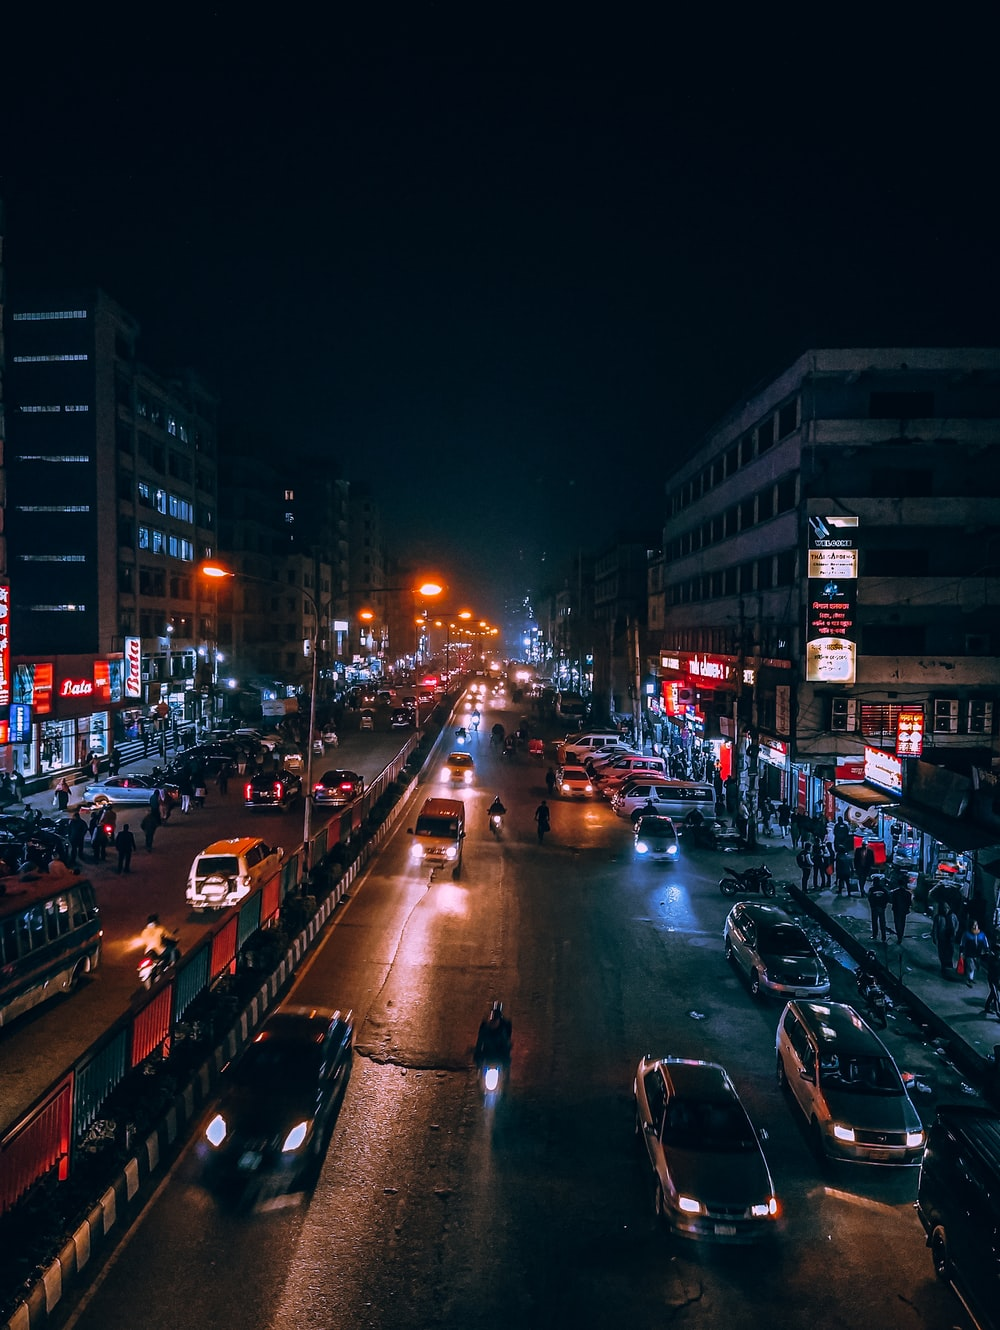 cars parked on side of the road during night time